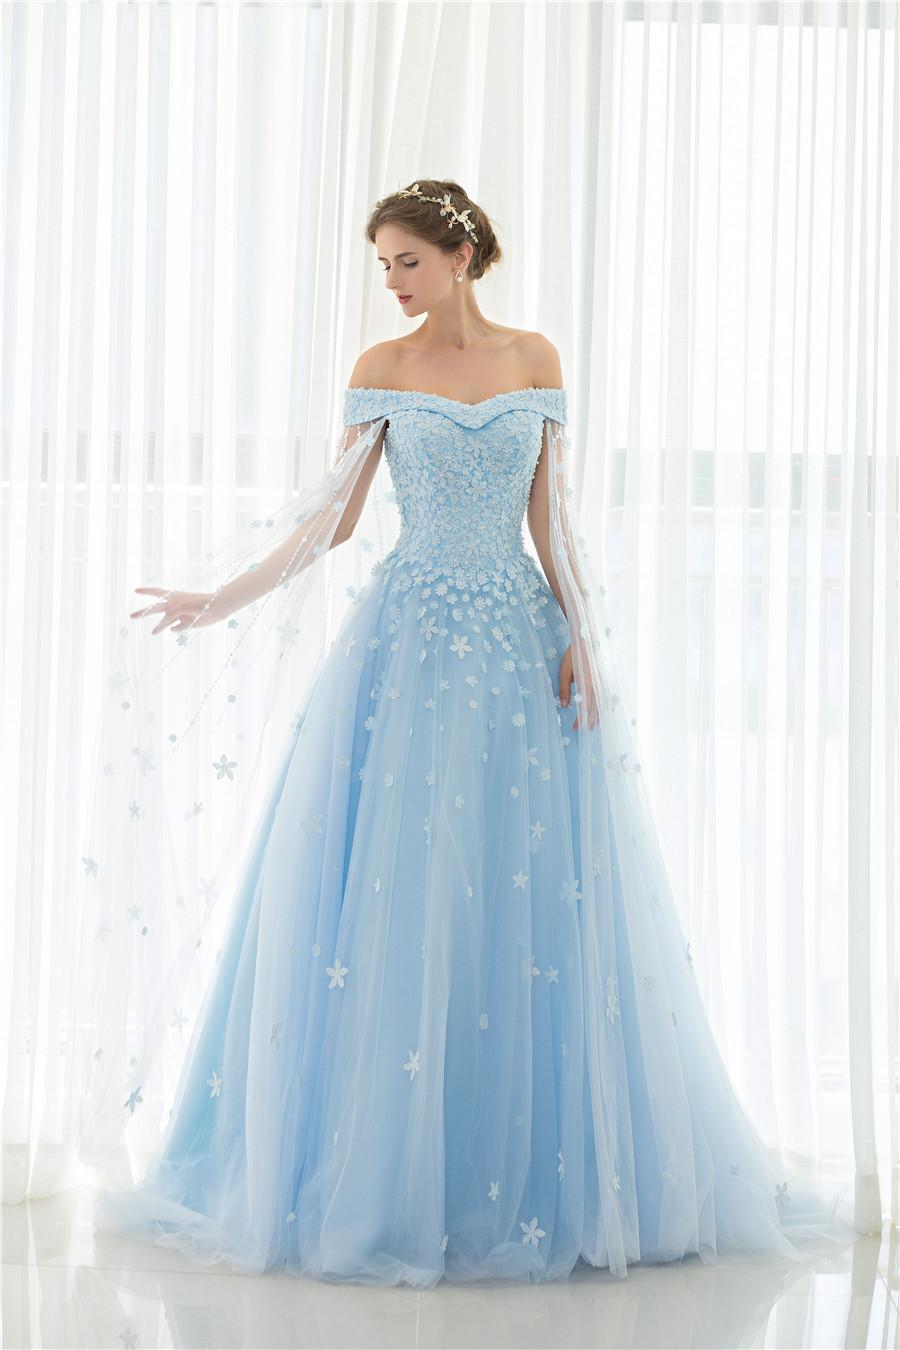 Discount 2017 Light Blue Bridal Gowns Women Luxury New Train Flower ...